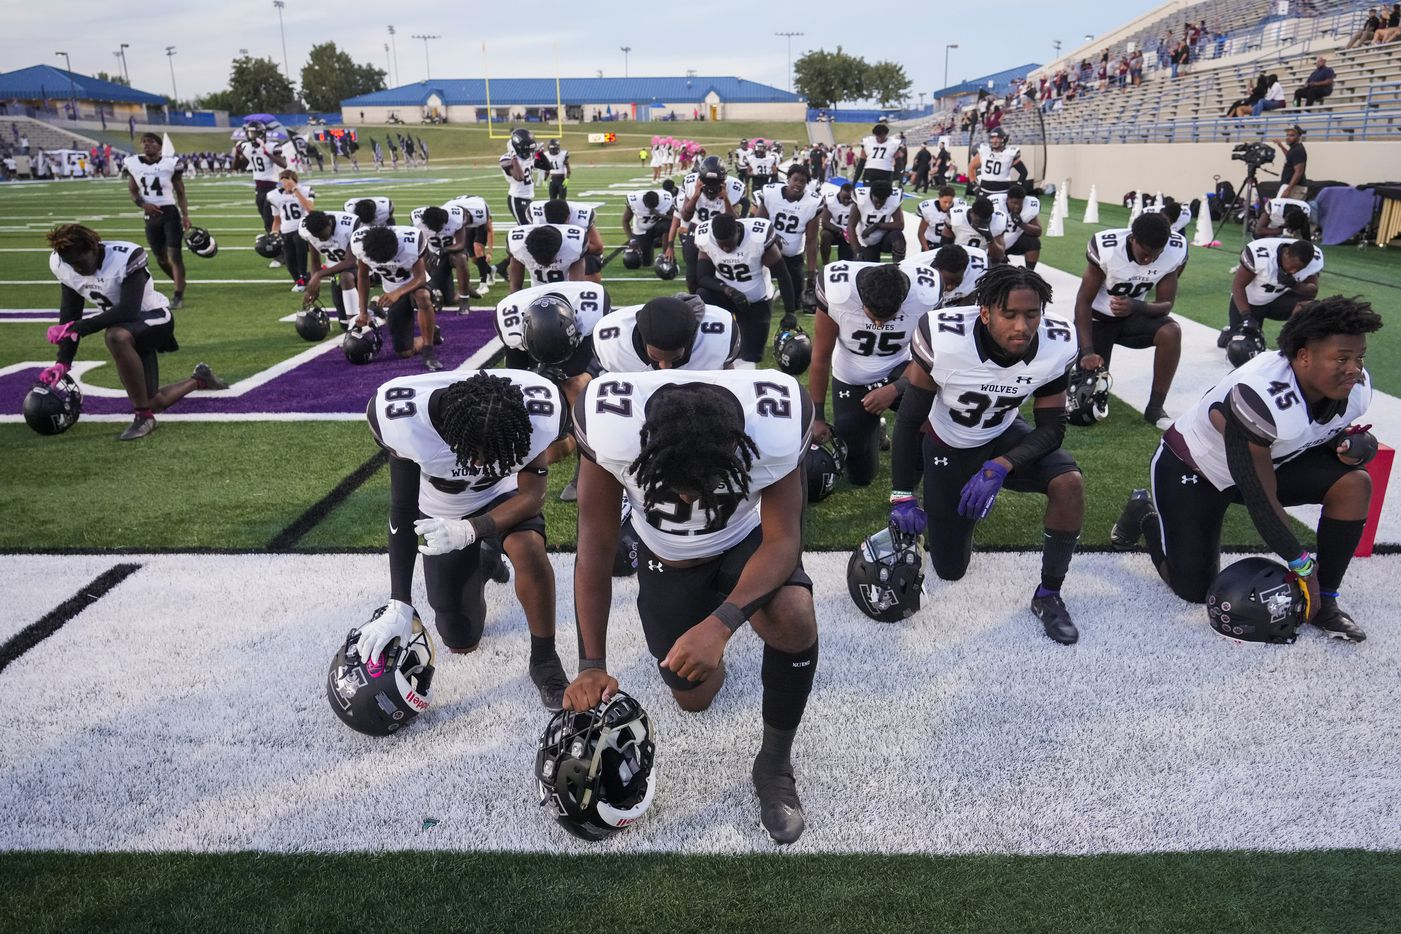 Mansfield Timberview kneel in prayer before facing Waco University in a high school football game at Waco ISD Stadium on Friday, Oct. 8, 2021, in Waco, Texas.